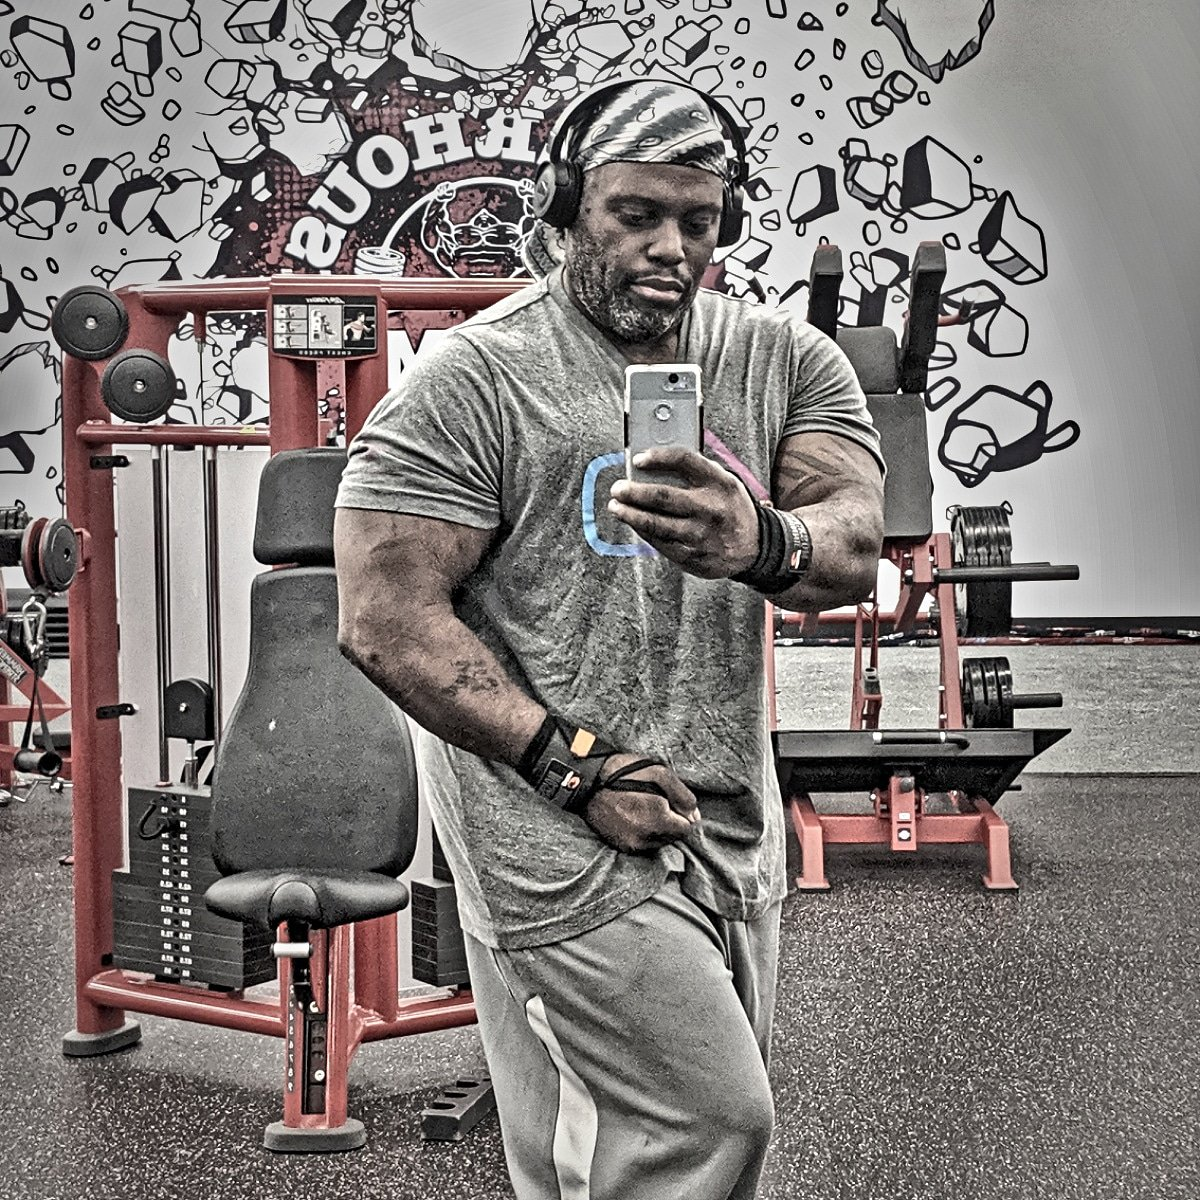 What y'all think #FitFam comment if you want <br>http://pic.twitter.com/20WU9xAHfD